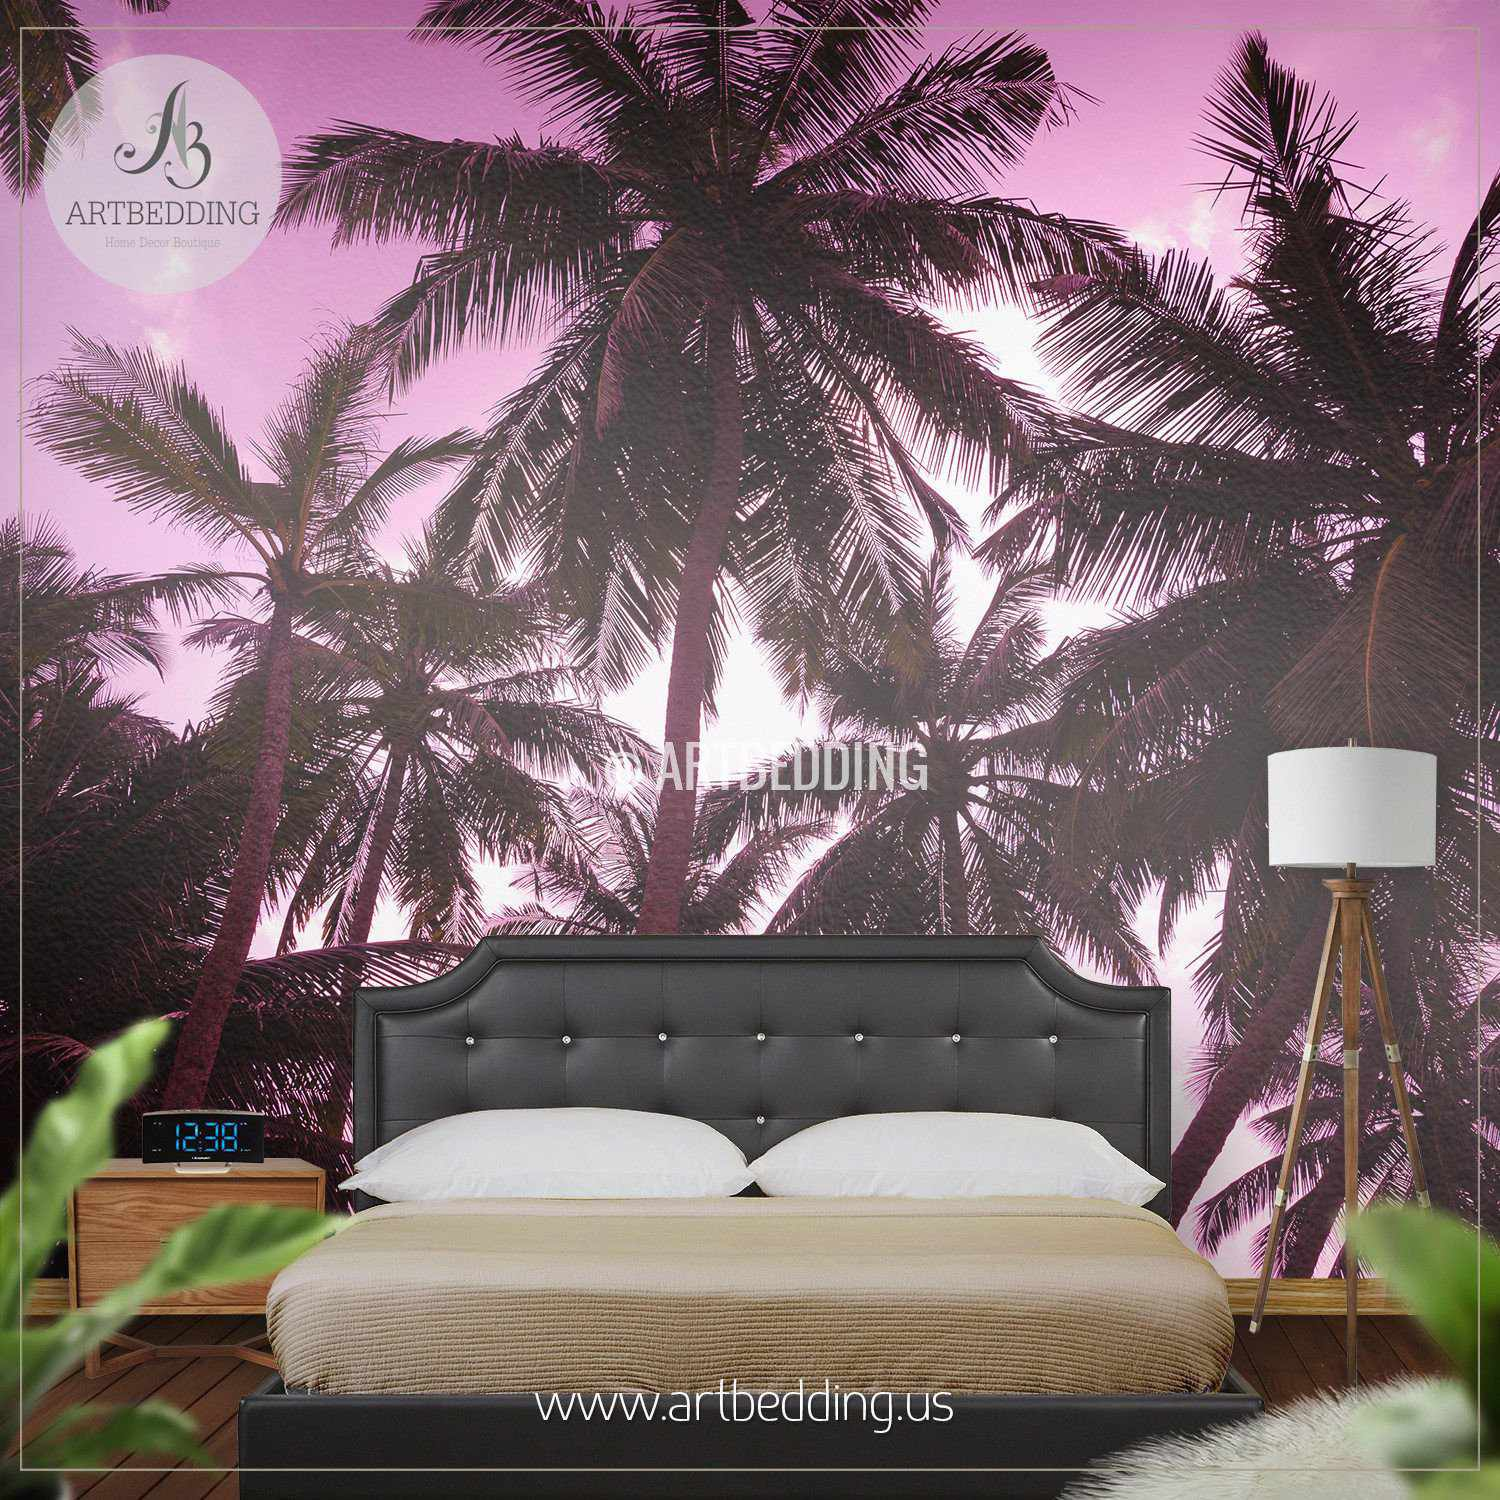 Romantic Sunset on Exotic Beach Self Adhesive Photo Mural ARTBEDDING